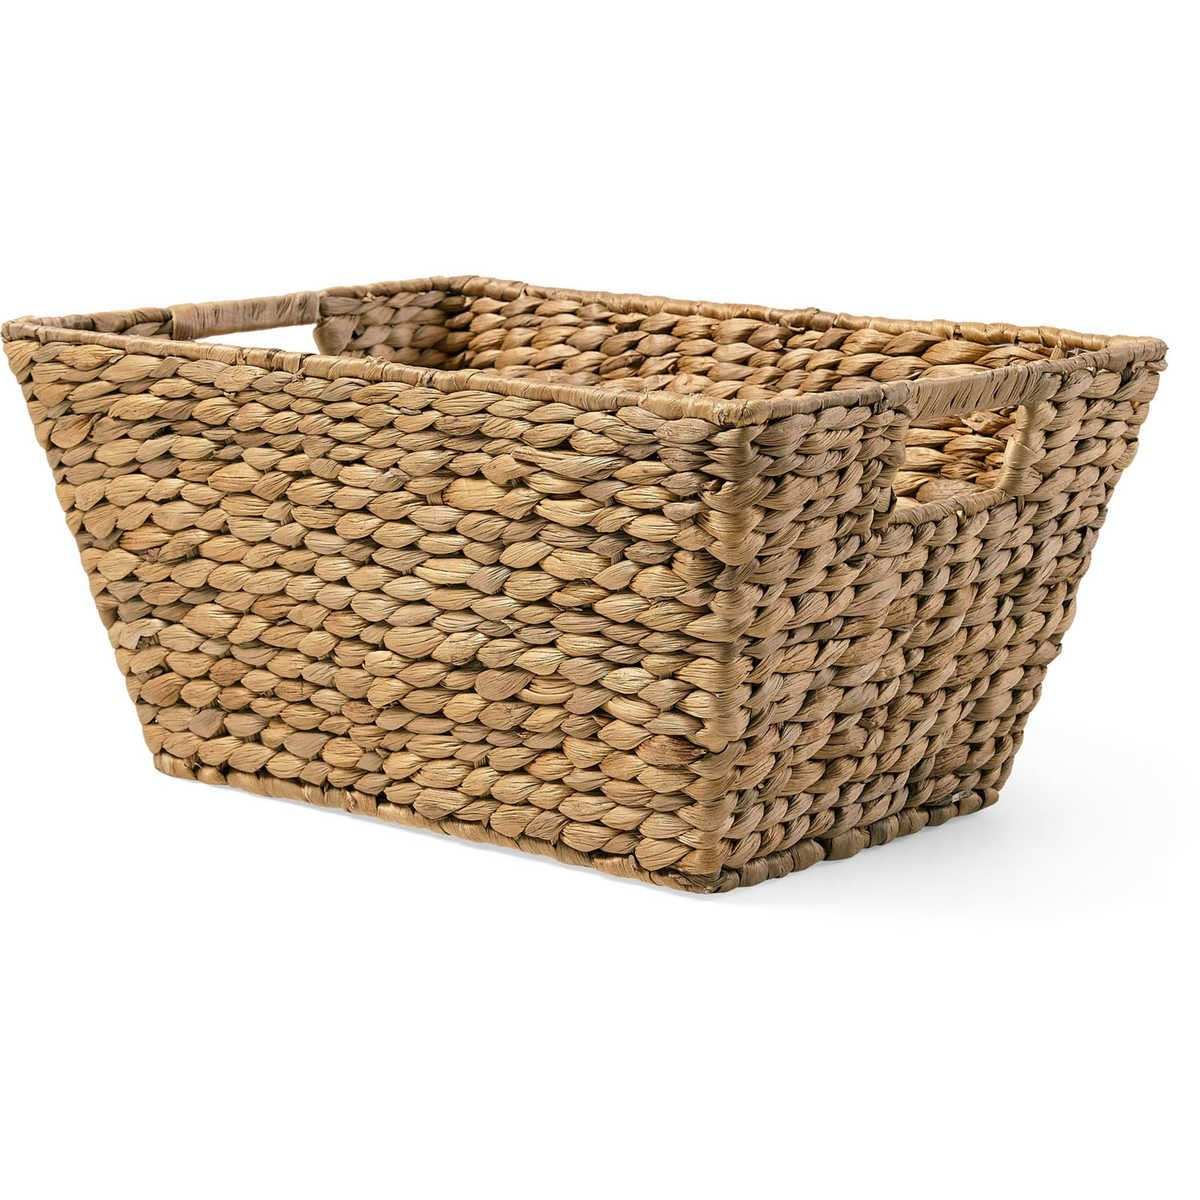 The House U0026 Home Large Rectangular Basket Is A Charming Way To Store Allu2026